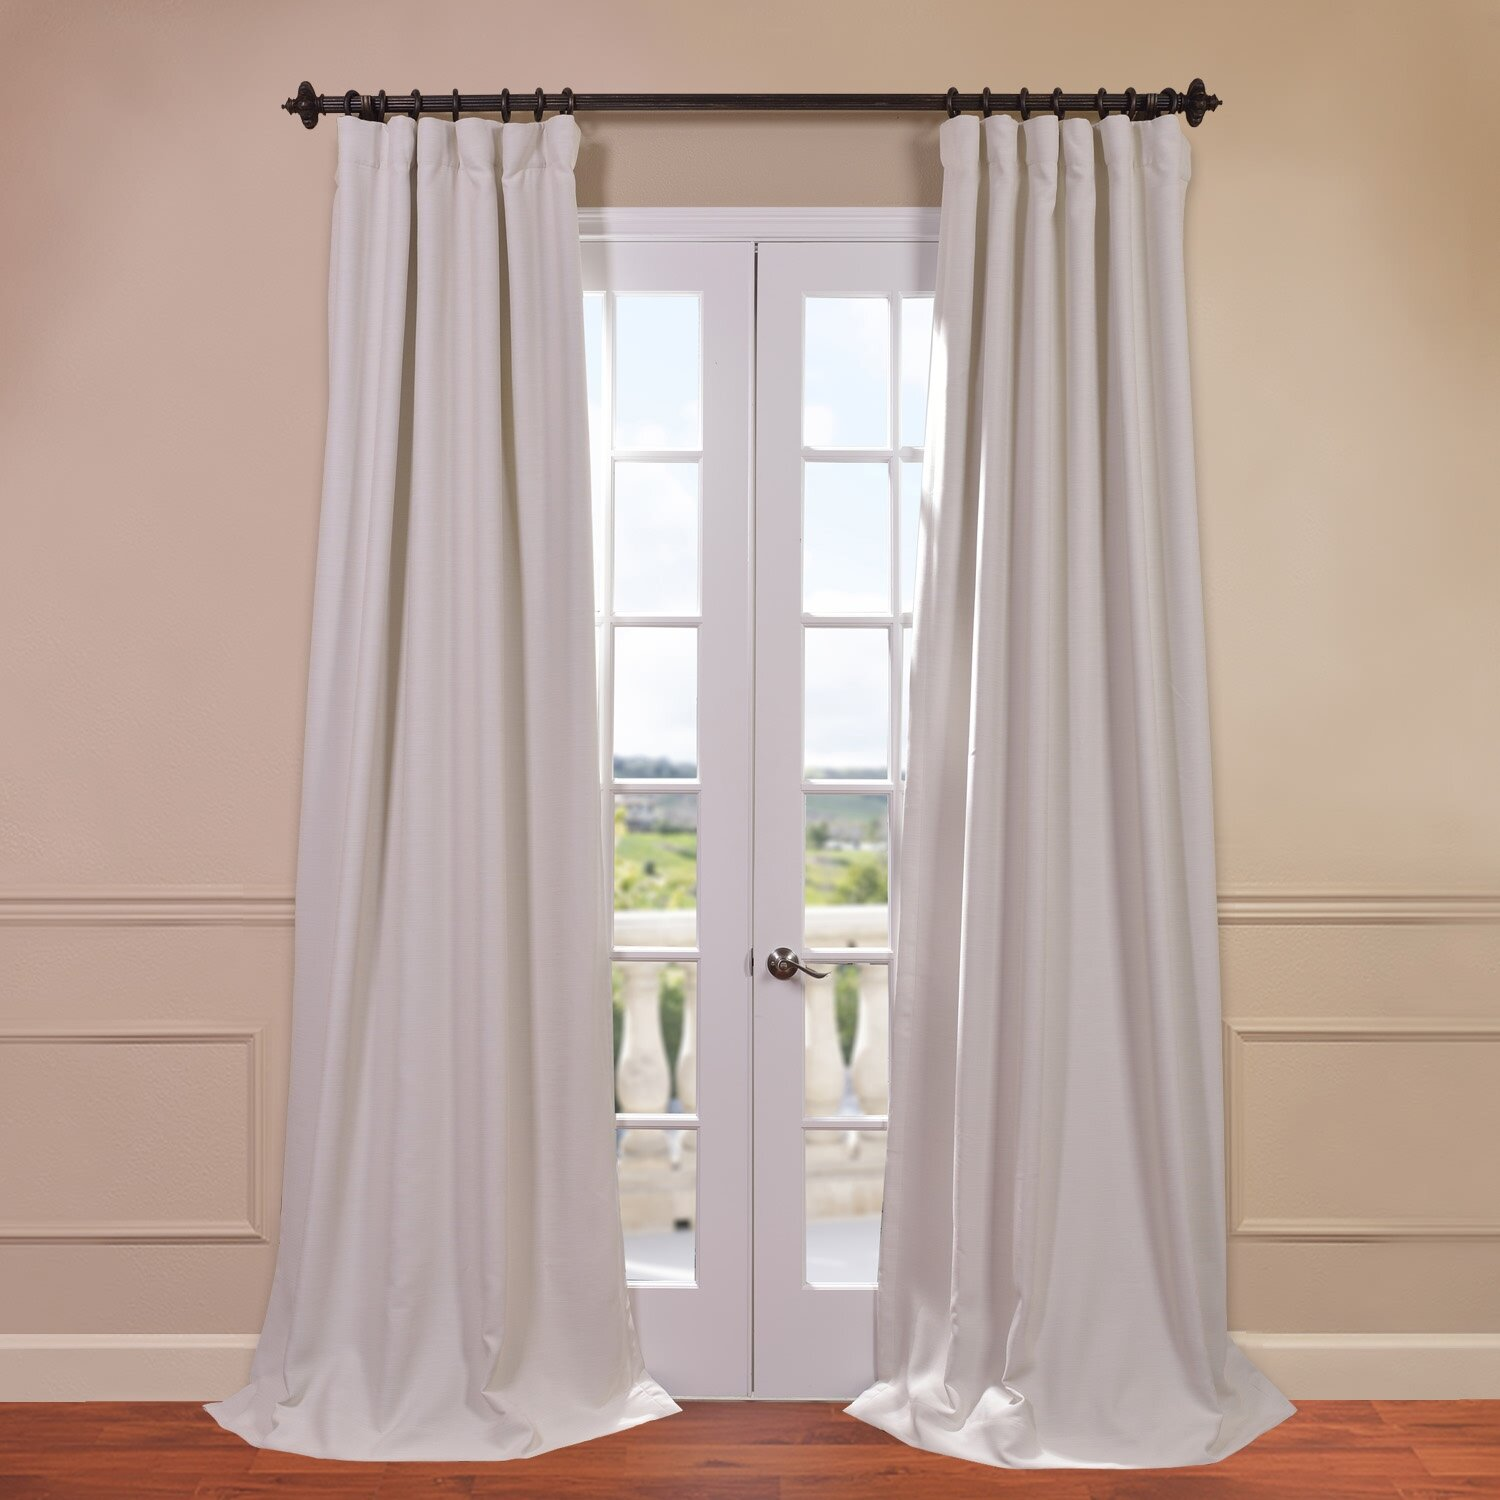 Blackout curtains for bedroom - Quick View Freemansburg Thermal Blackout Single Curtain Panel